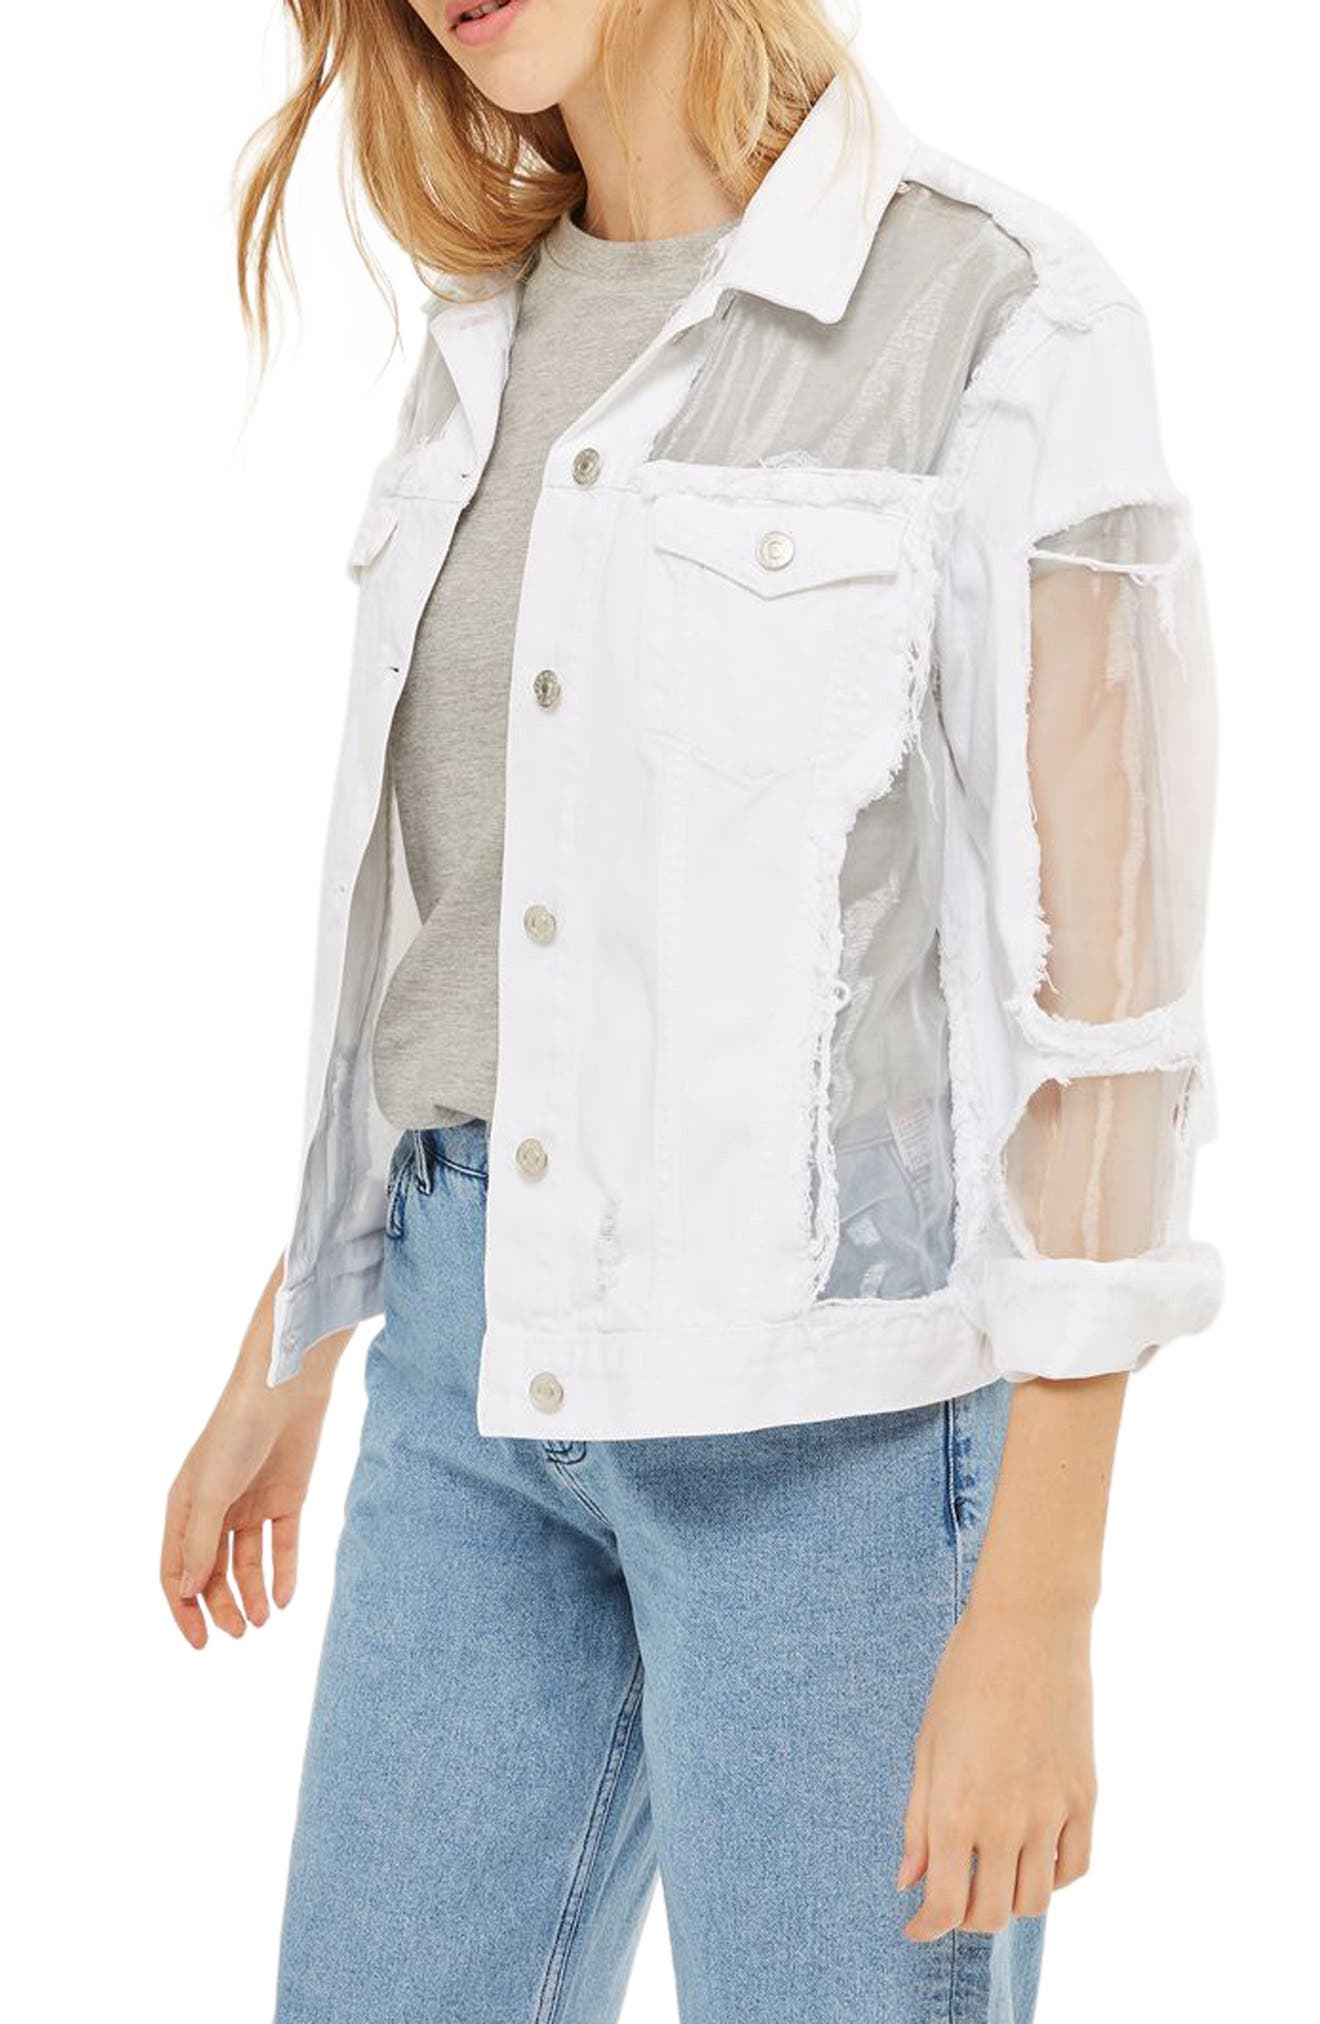 Topshop Organza Ripped Denim Jacket